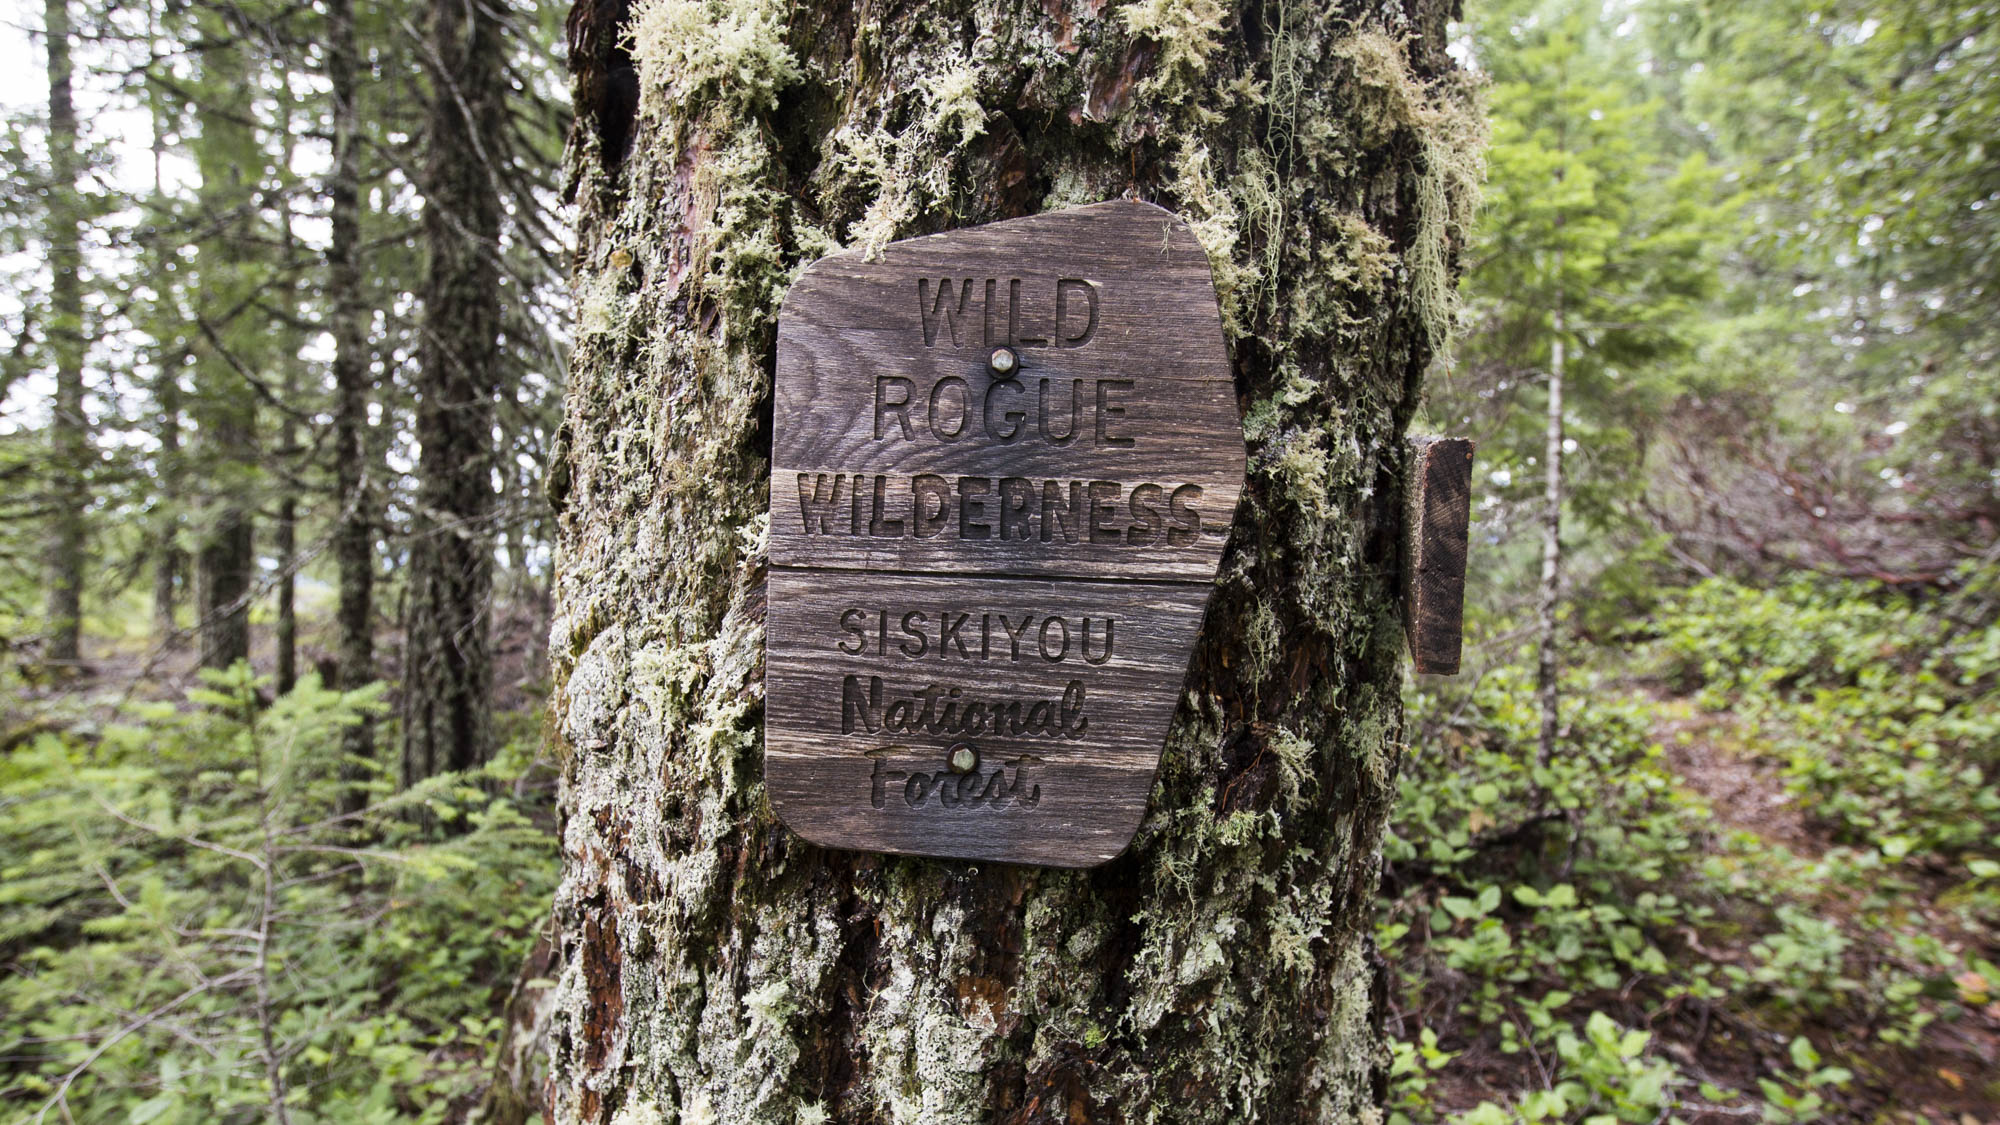 Both of the first two lookouts were in the Rogue-Siskiyou National Forest.